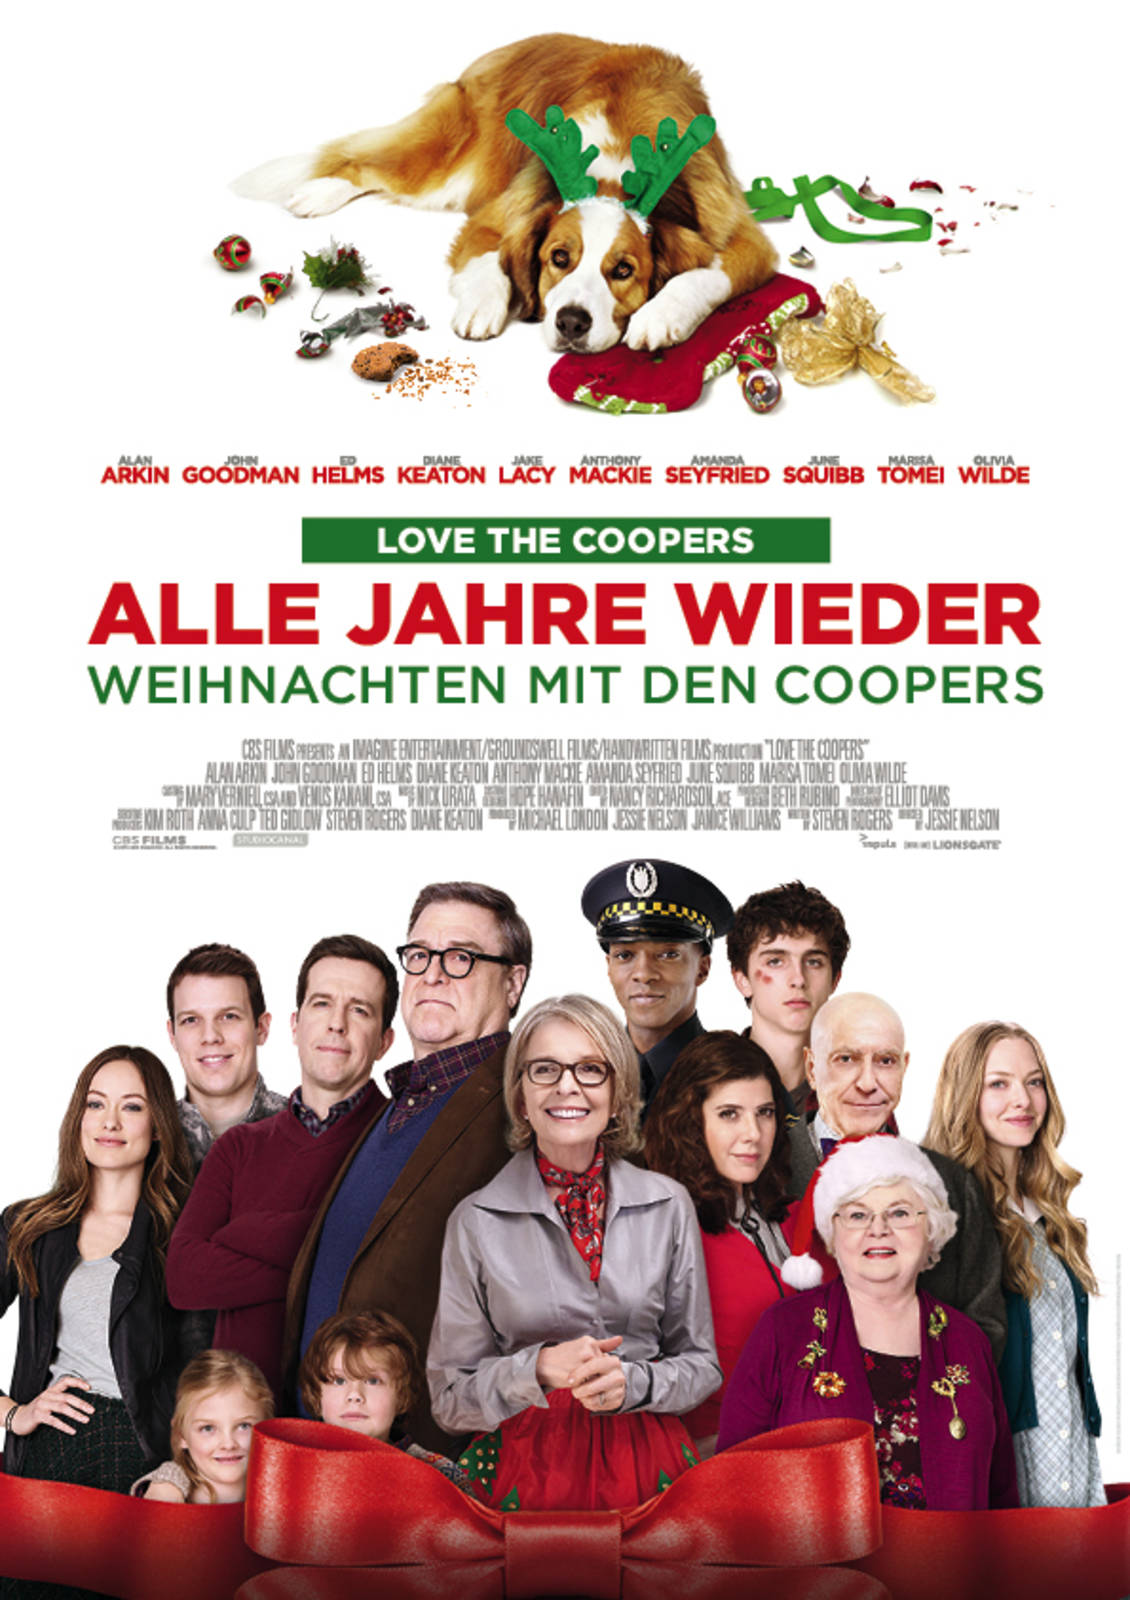 film alle jahre wieder weihnachten mit den coopers cineman. Black Bedroom Furniture Sets. Home Design Ideas